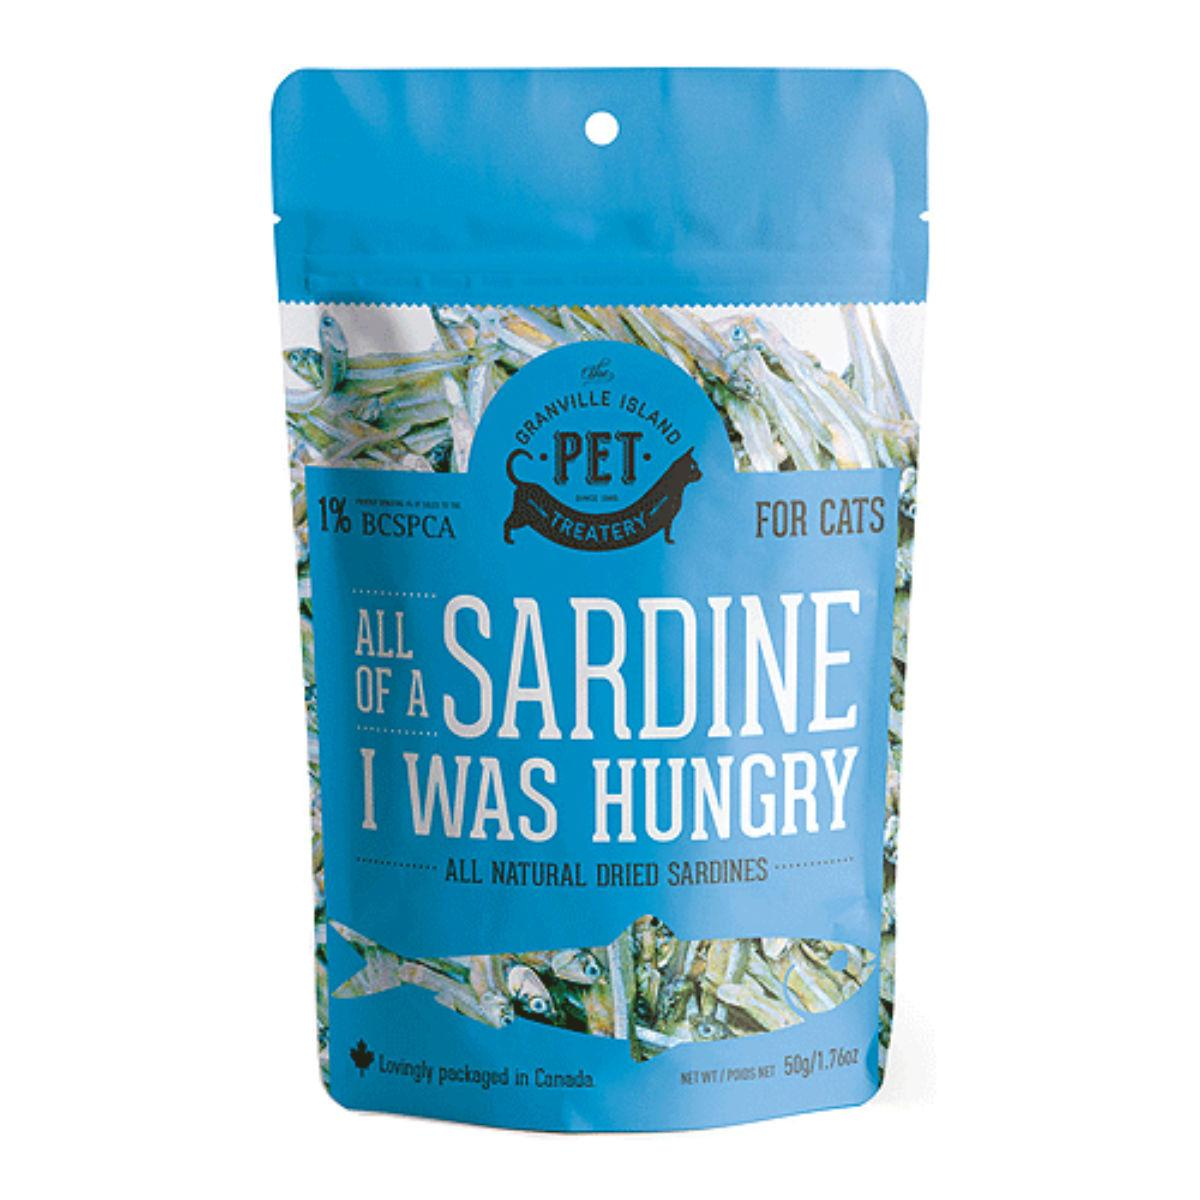 Granville Pure Protein Cat Treat - All of a Sardine I Was Hungry